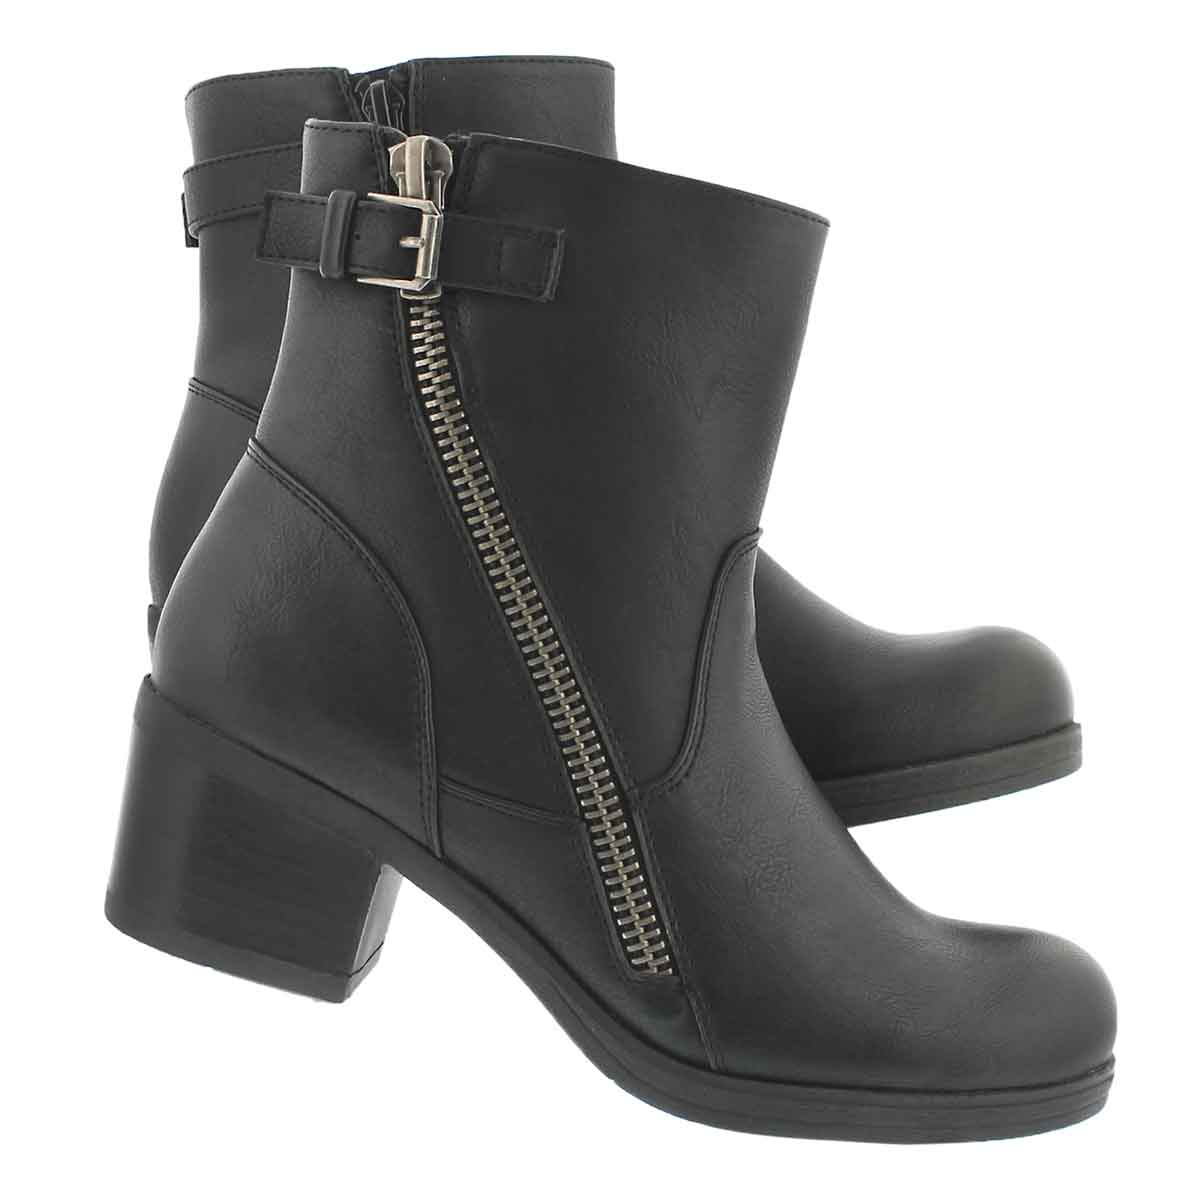 Lds Bobbi Jean blk casual ankle boot